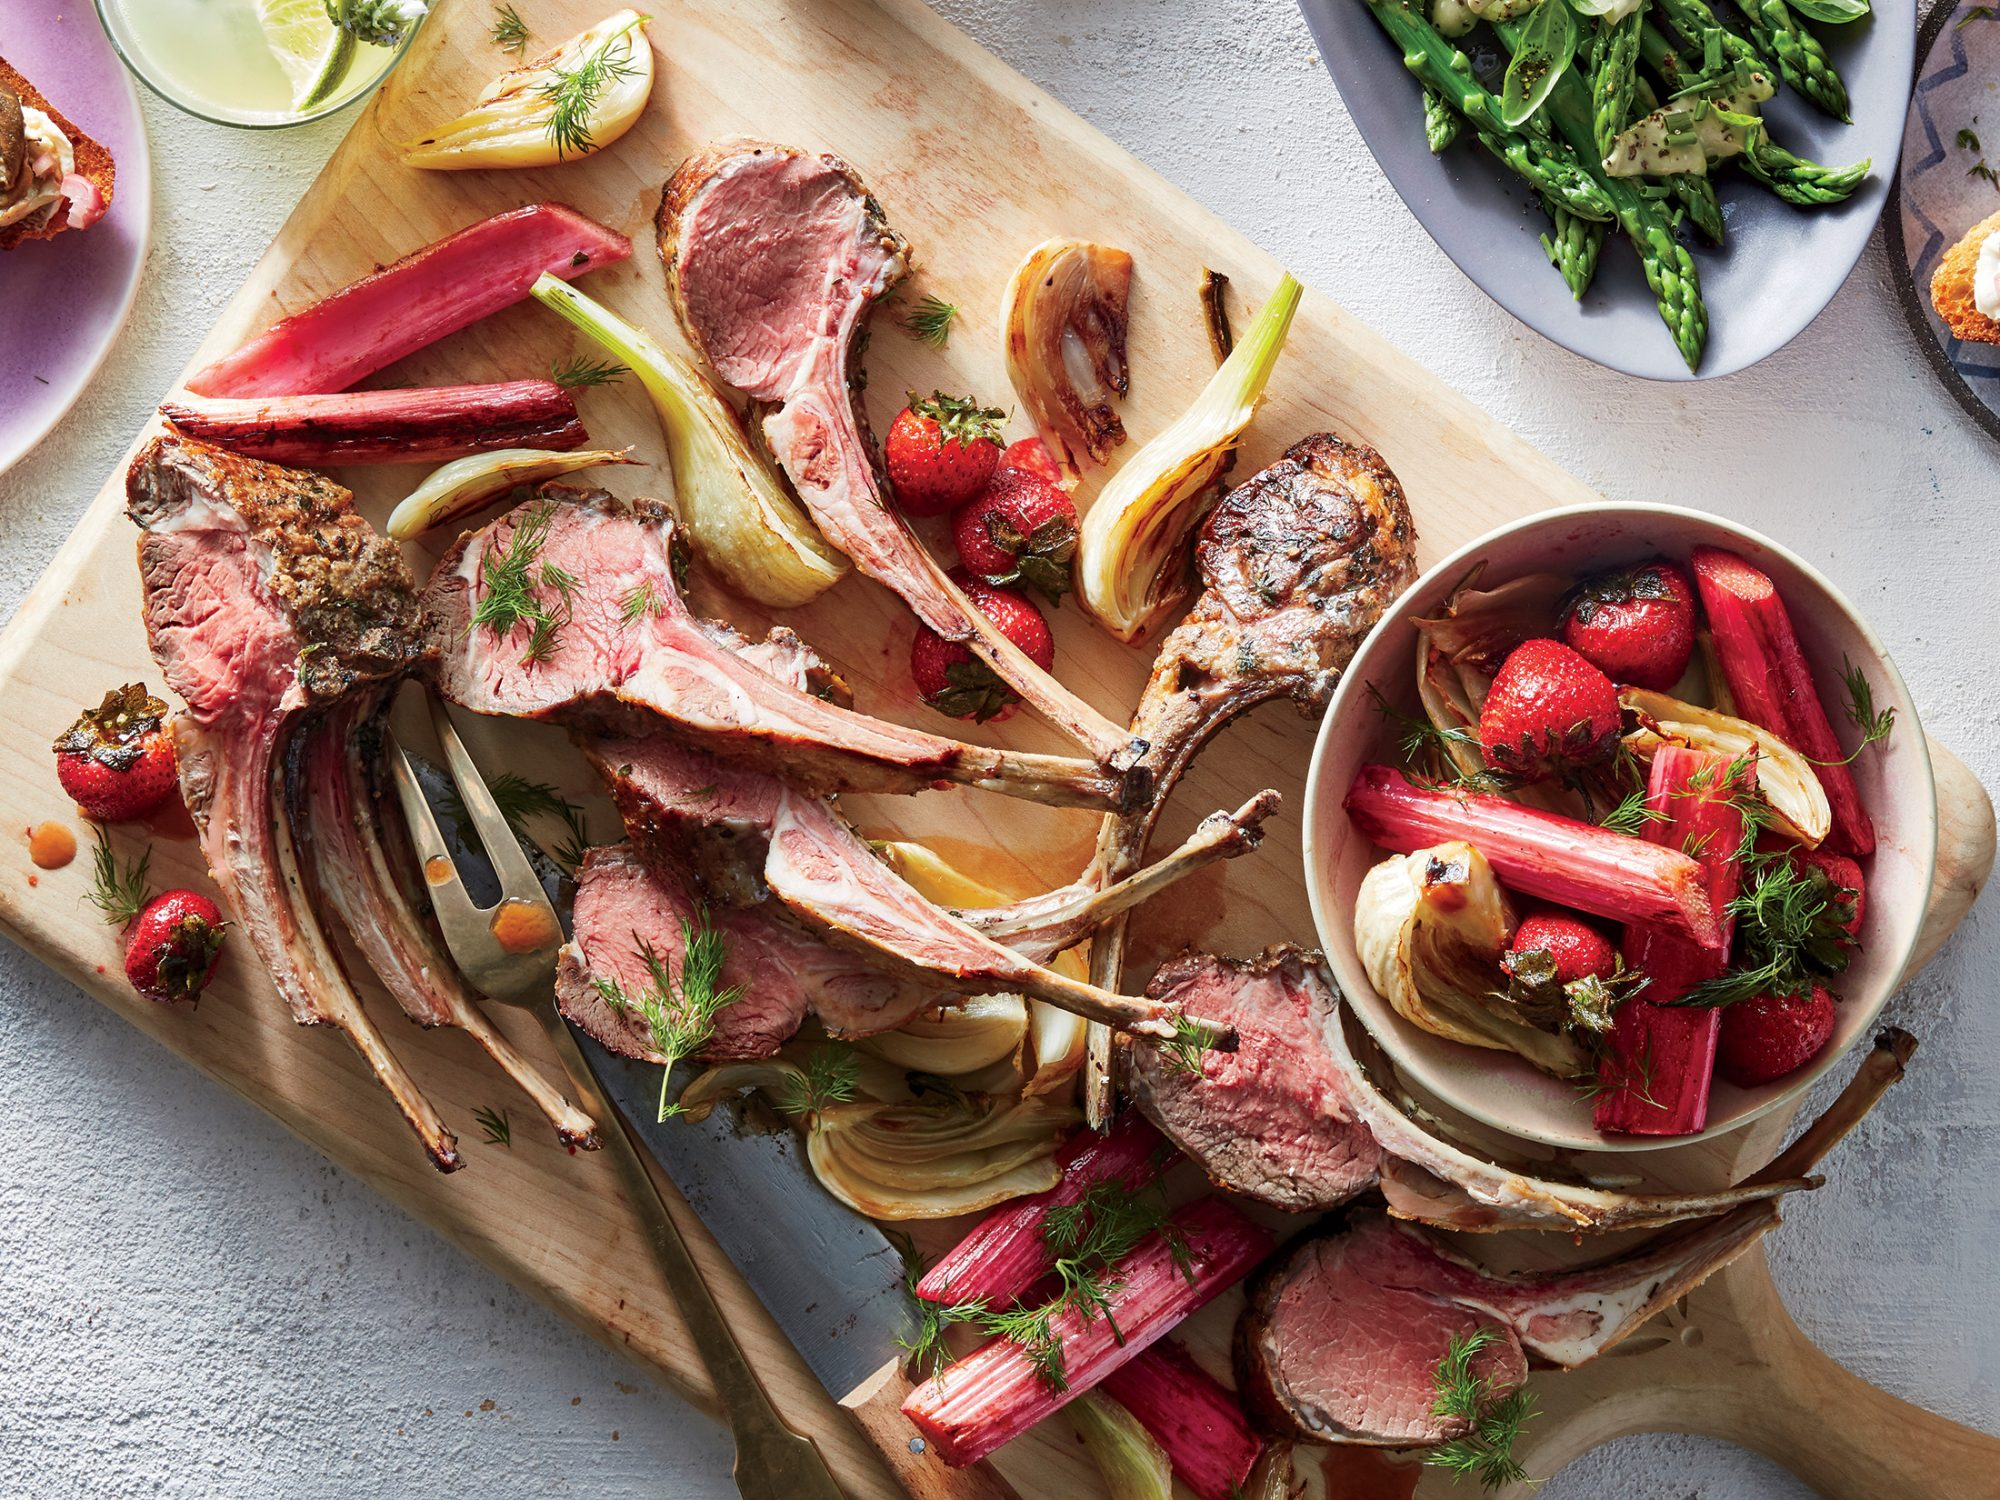 10 Brilliant Ways Chefs Are Using Rhubarb This Spring